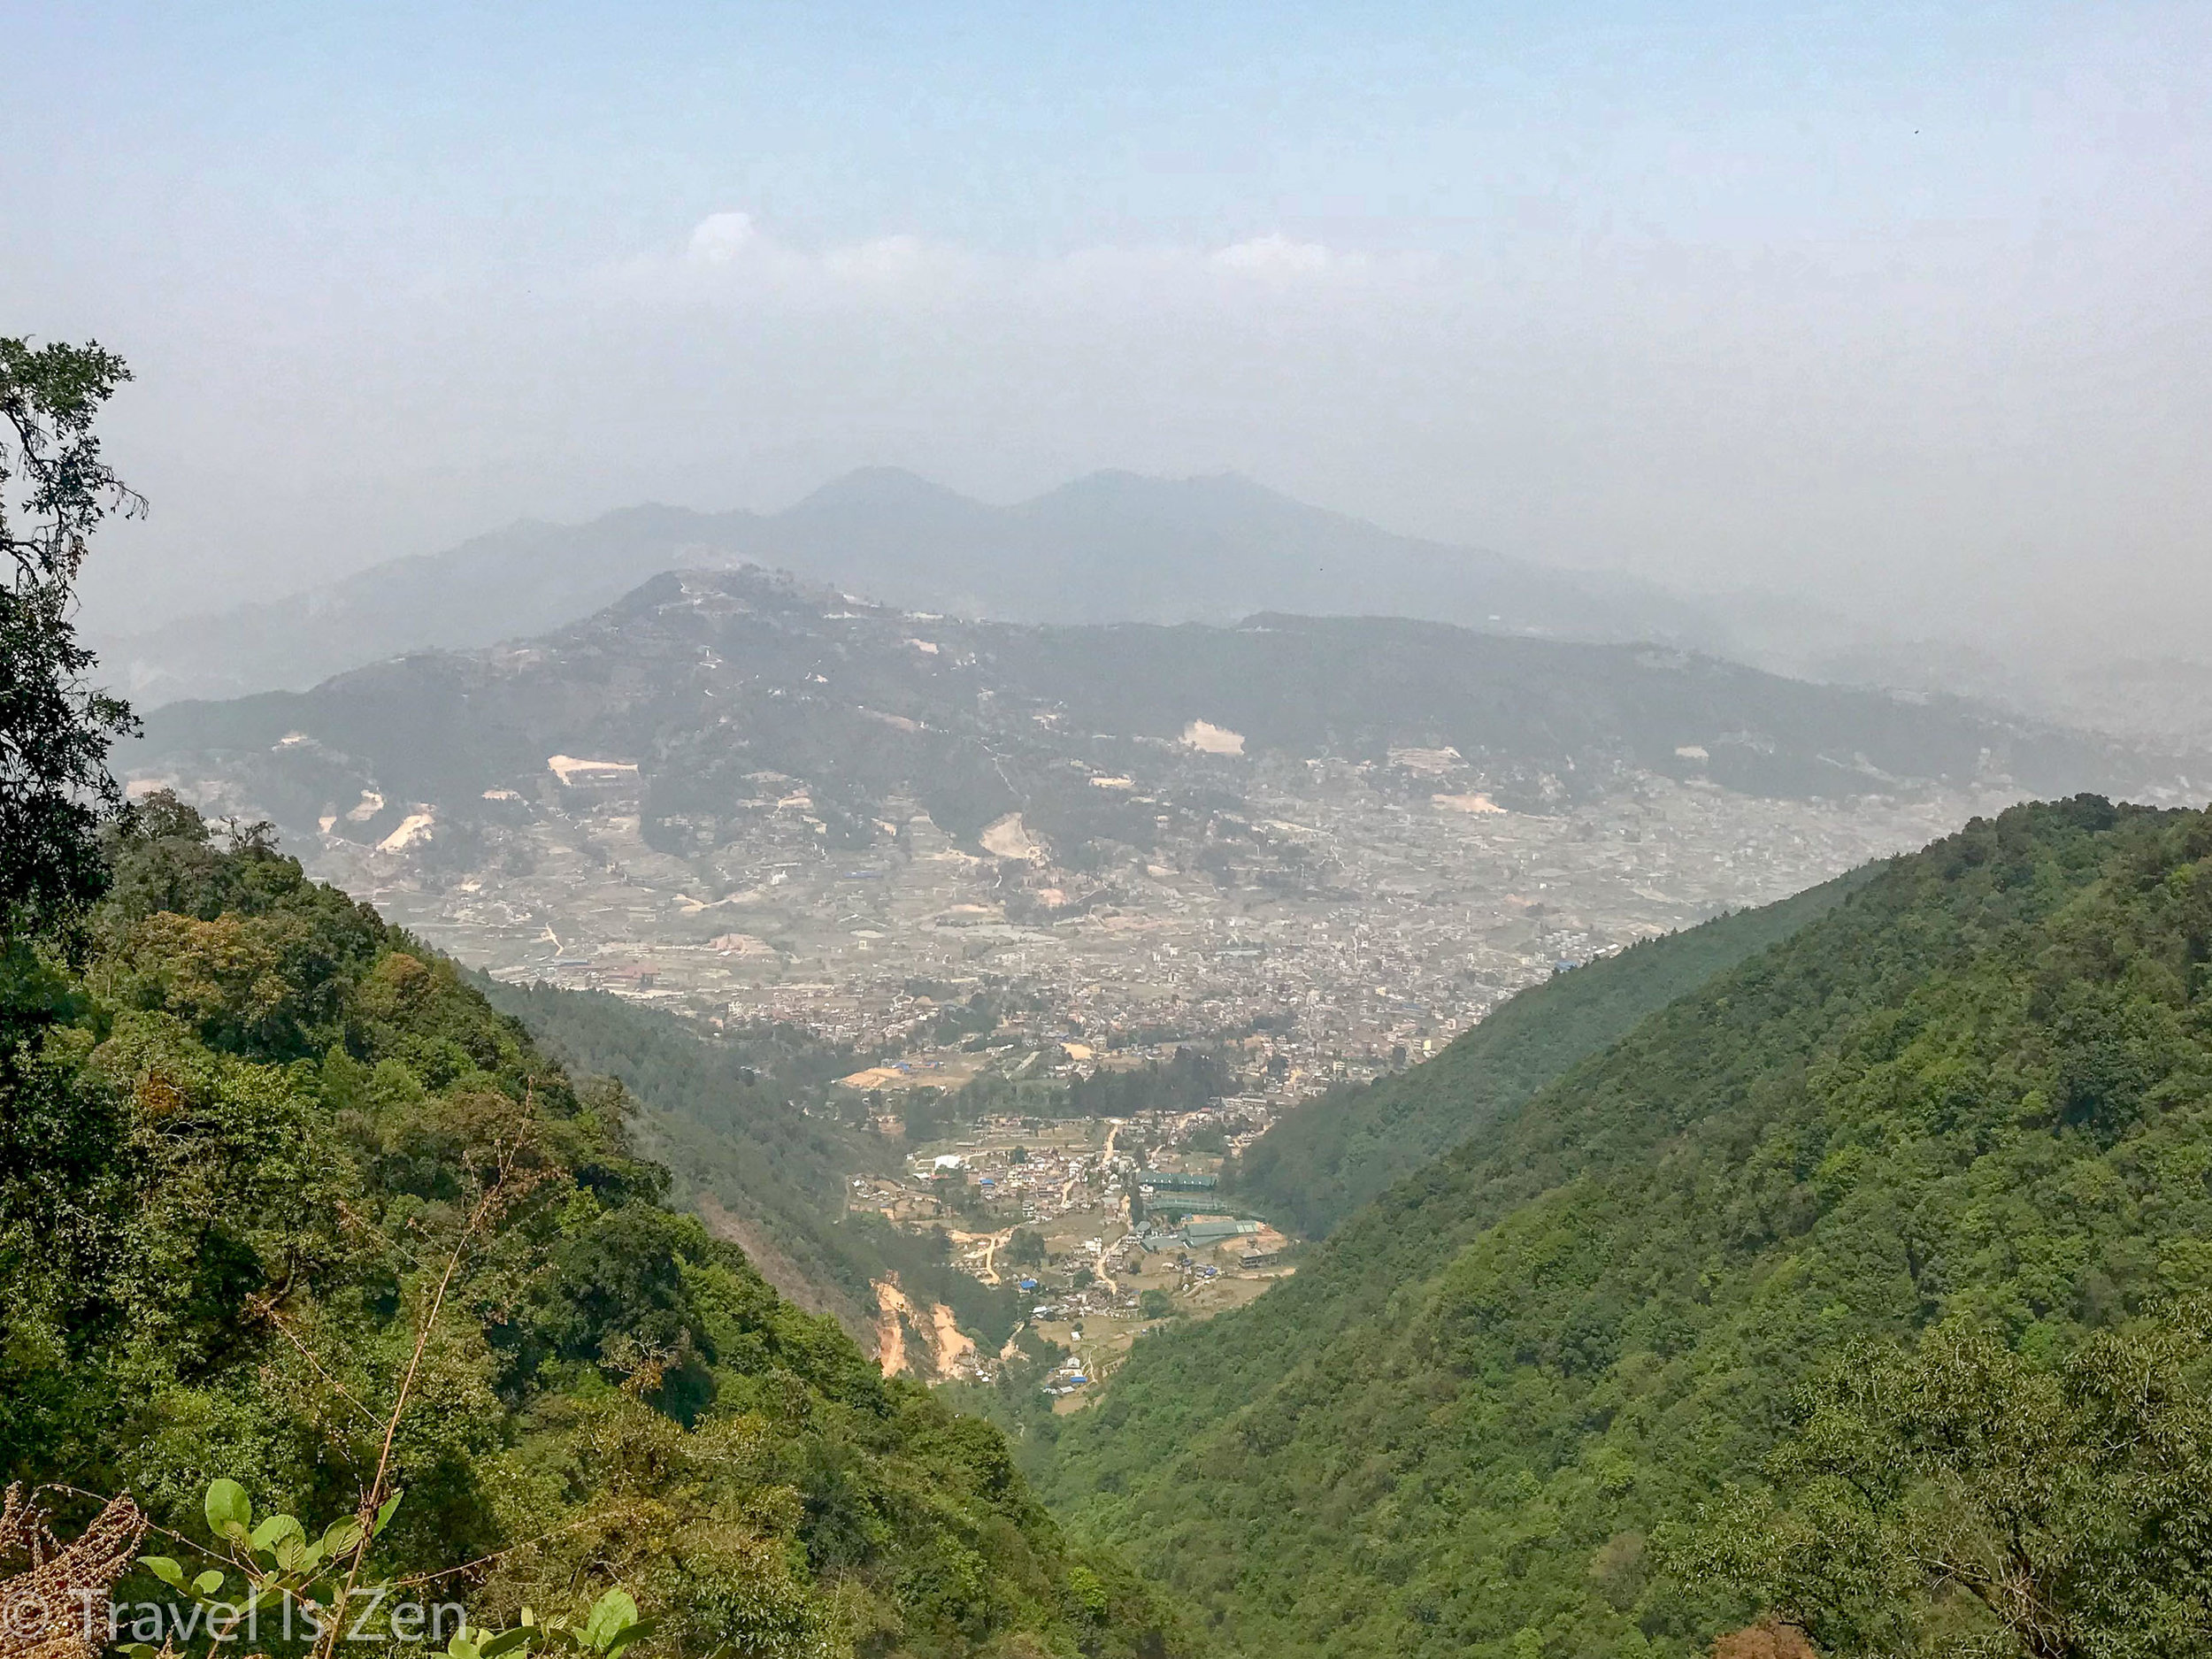 View of Thankot (in the valley)from the top of trail. Kathmandu in the distance.